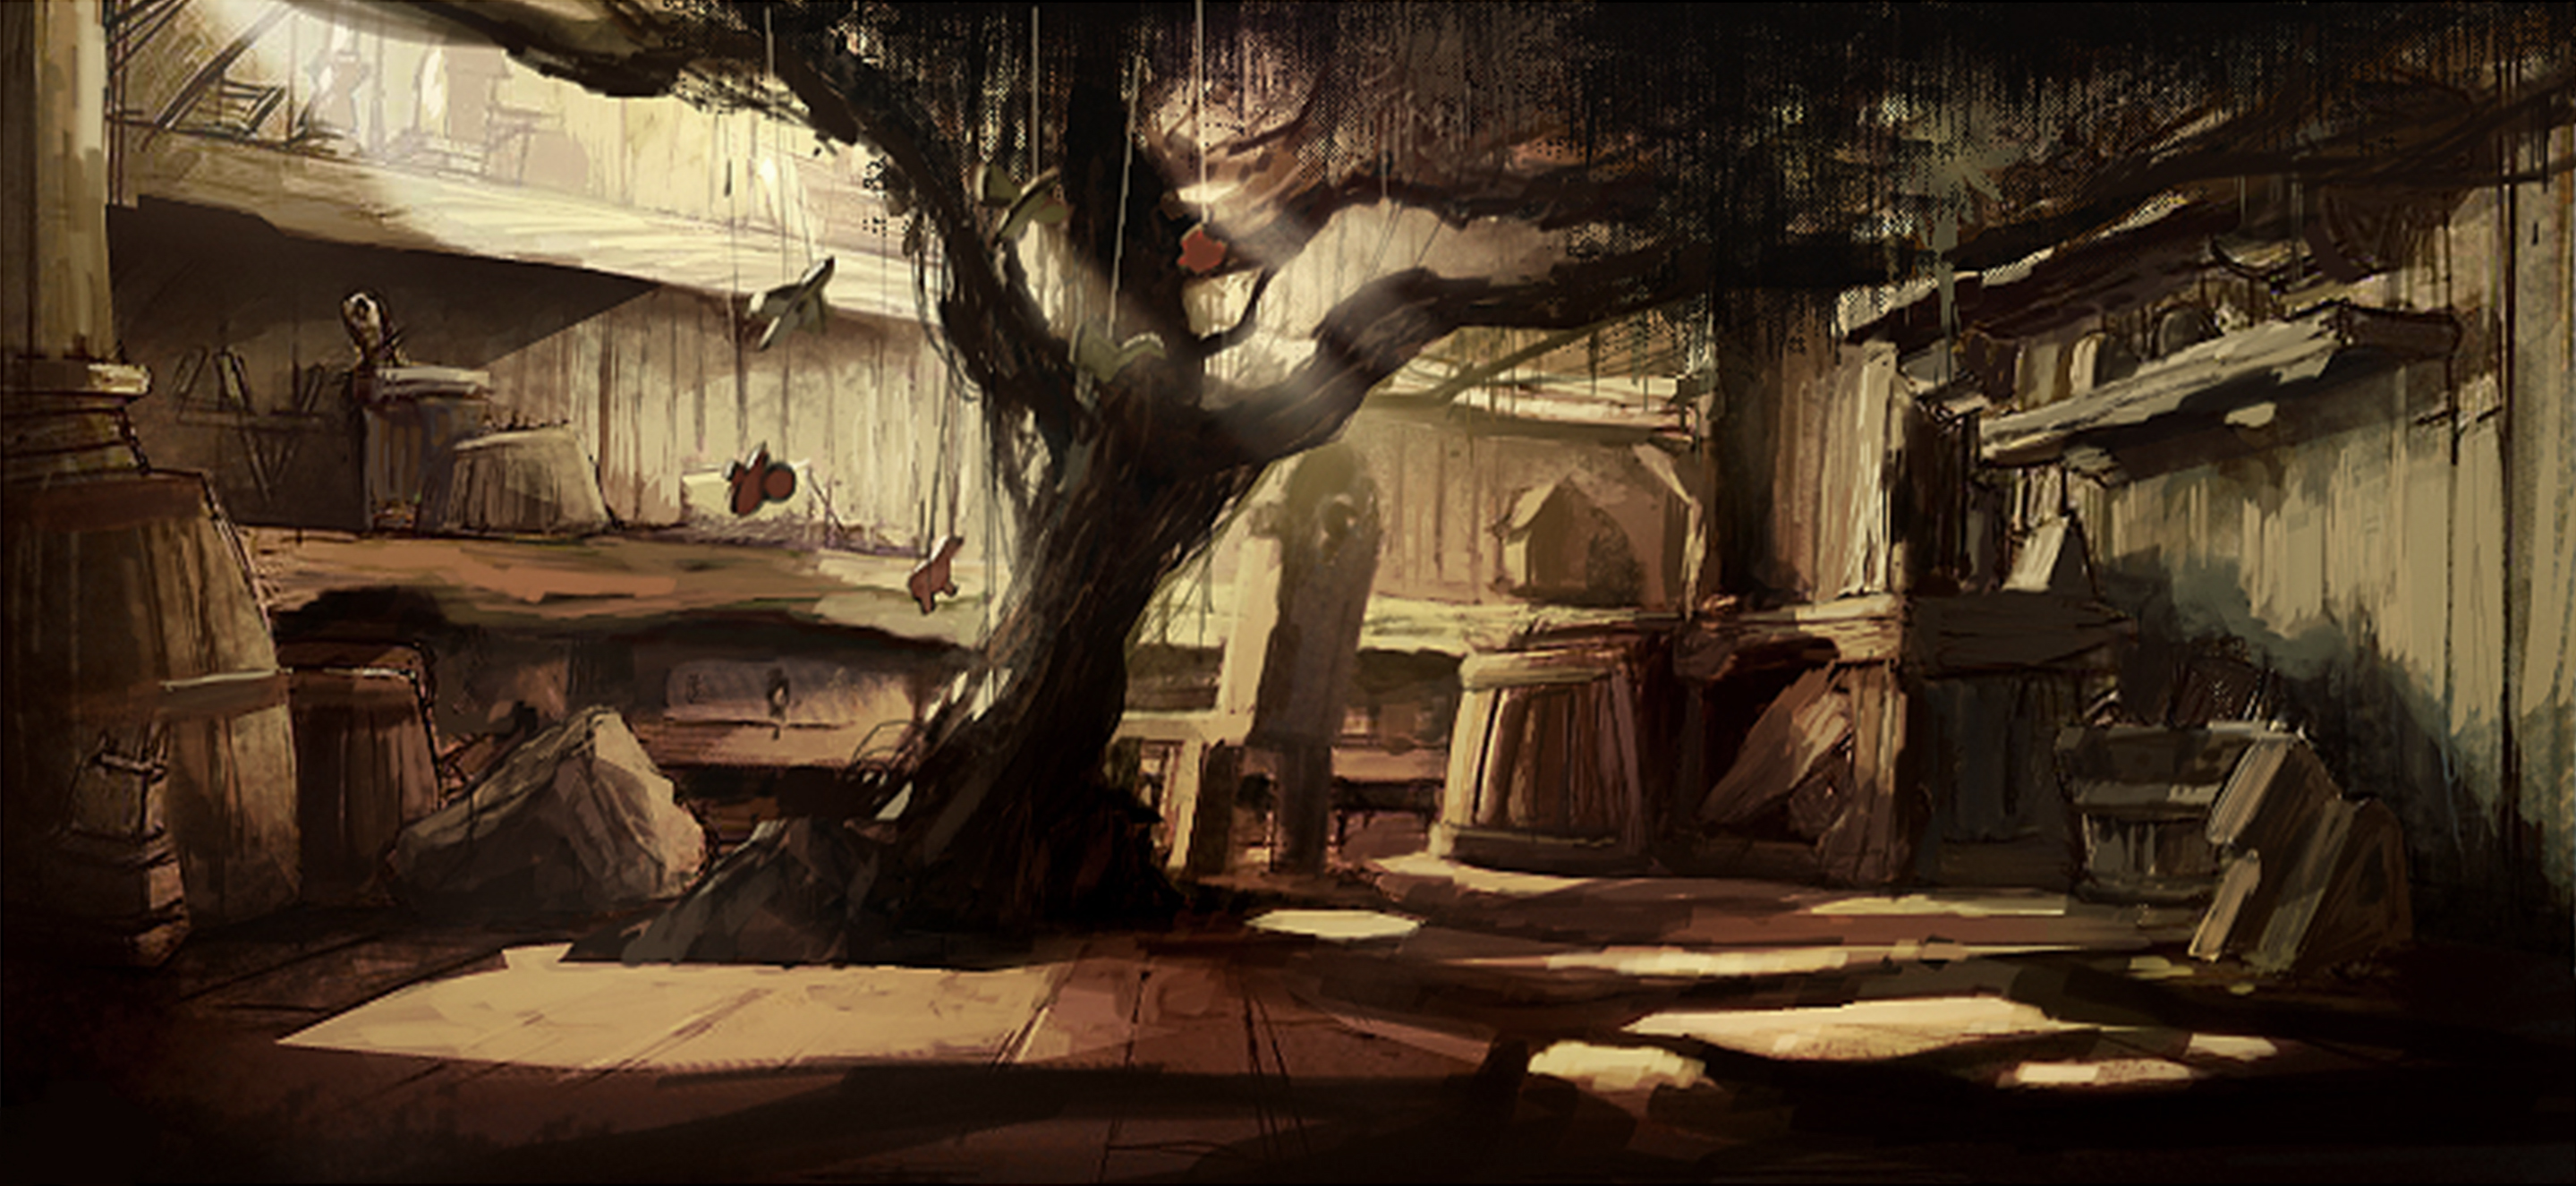 Workshop Interior-sketch